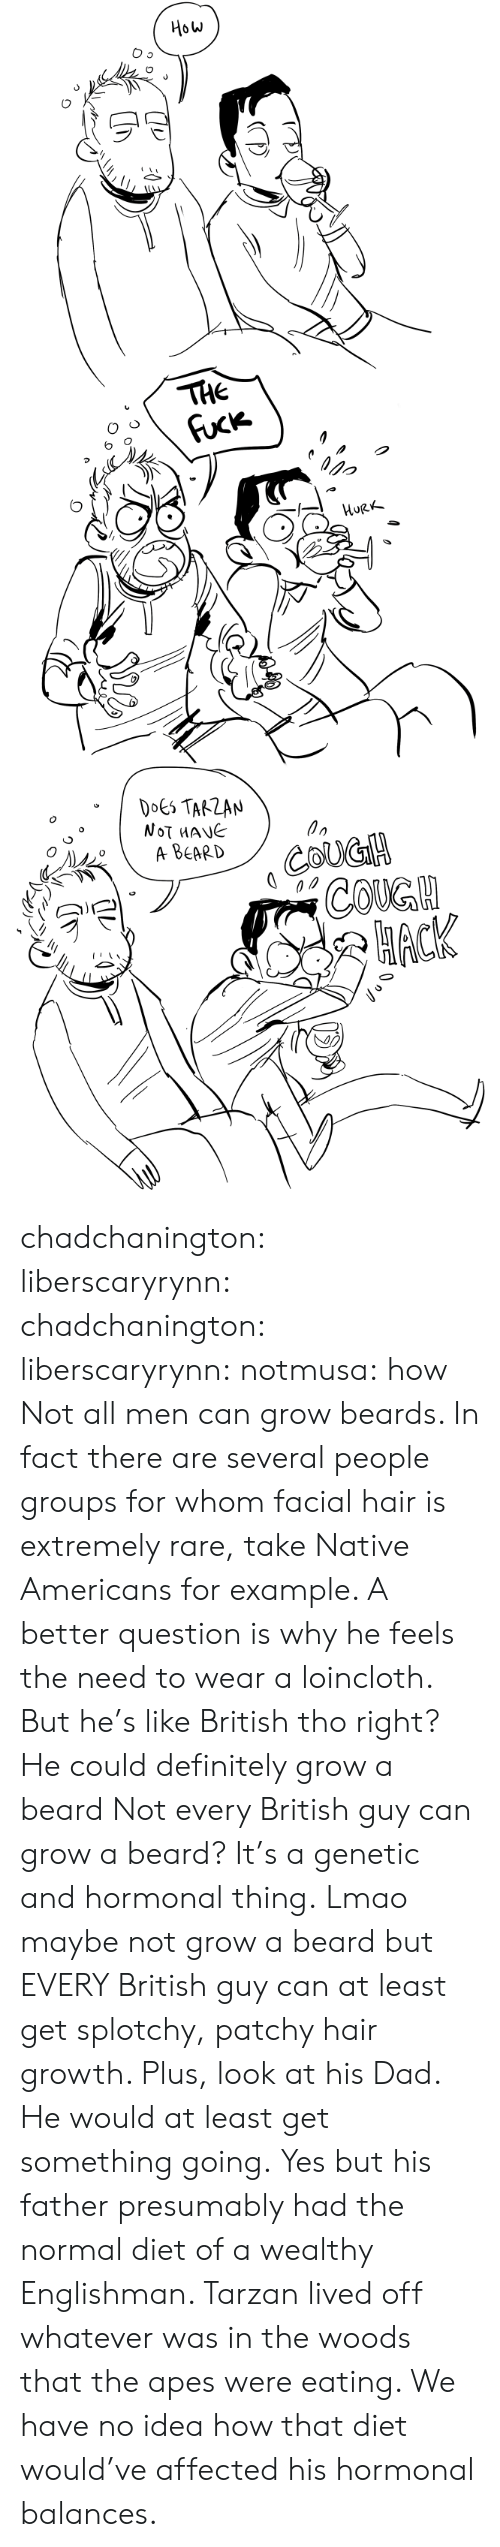 Facial: How  THE  Fuck  орo  HURK  DOES TARZAN  NOT MANE  A ВЕARD  COUGH  СOKGH  НАСК chadchanington:  liberscaryrynn:  chadchanington:  liberscaryrynn:  notmusa:  how  Not all men can grow beards. In fact there are several people groups for whom facial hair is extremely rare, take Native Americans for example. A better question is why he feels the need to wear a loincloth.  But he's like British tho right? He could definitely grow a beard  Not every British guy can grow a beard? It's a genetic and hormonal thing.  Lmao maybe not grow a beard but EVERY British guy can at least get splotchy, patchy hair growth. Plus, look at his Dad. He would at least get something going.  Yes but his father presumably had the normal diet of a wealthy Englishman. Tarzan lived off whatever was in the woods that the apes were eating. We have no idea how that diet would've affected his hormonal balances.